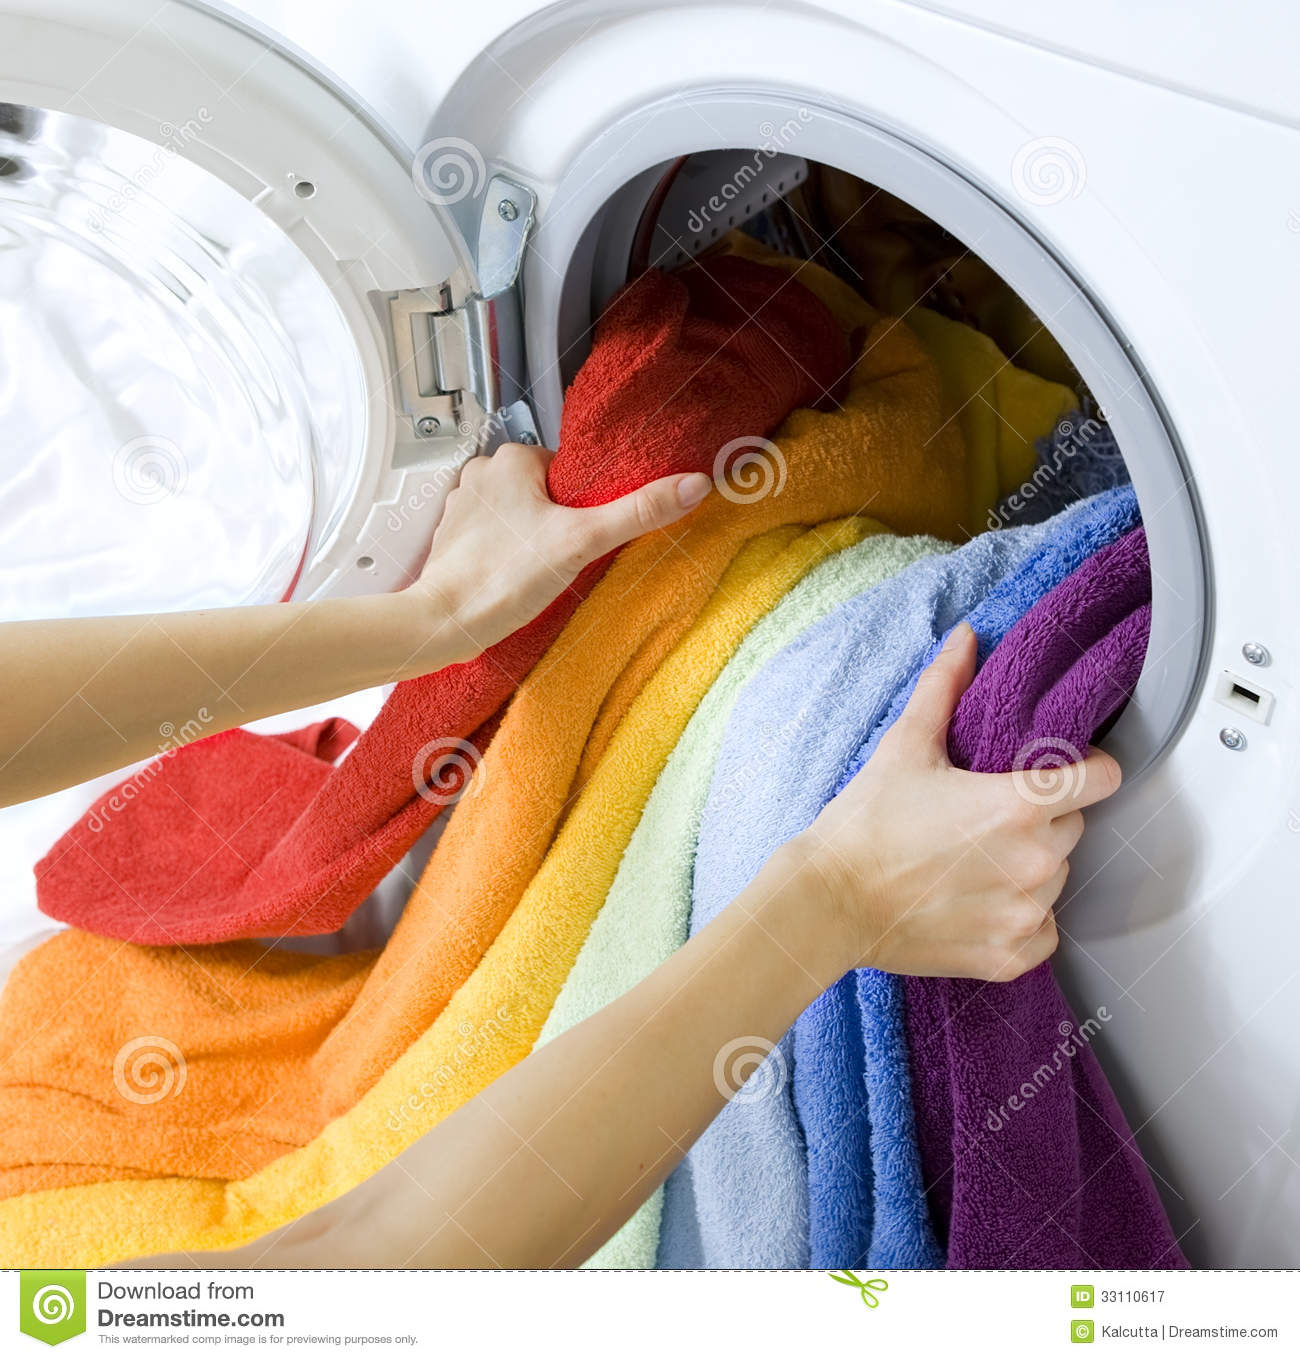 Wash plastic and cloth curtains on gentle in warm water. Clean plastic and cloth curtains (including those with plastic backings) on gentle in warm water with all-purpose detergent. Air-dry plastic curtains; follow care labels for cloth ones. Prevent rips in plastic curtains by washing along with socks.